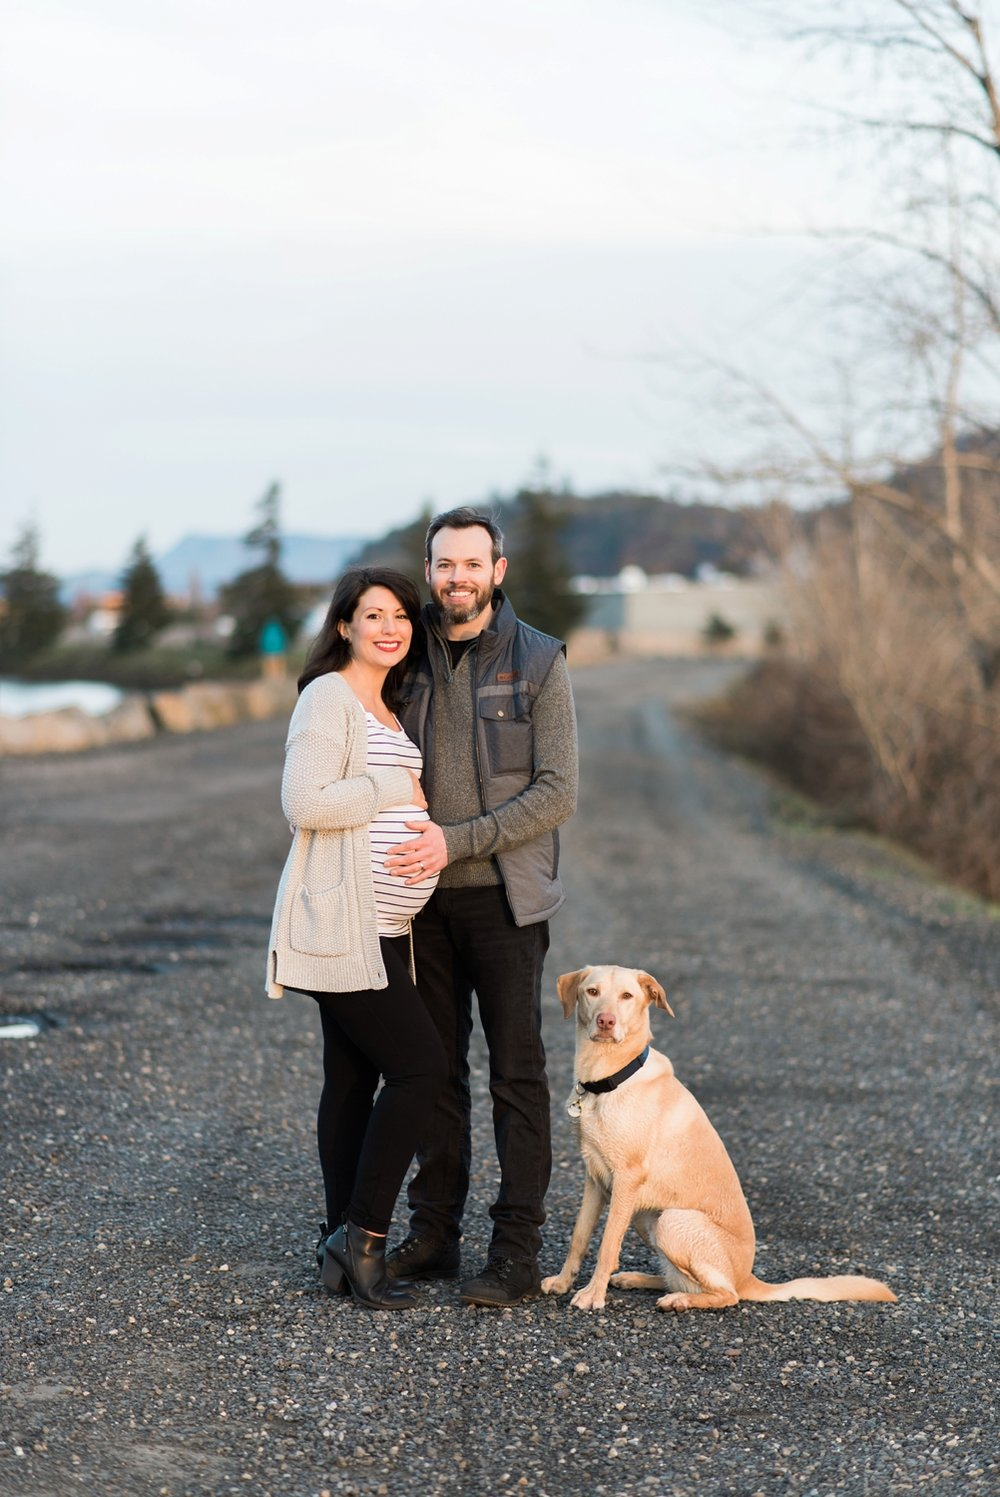 hood-river-maternity-photos-with-dog-columbia-river-gorge-shelley-marie-photo-201_cr.jpg